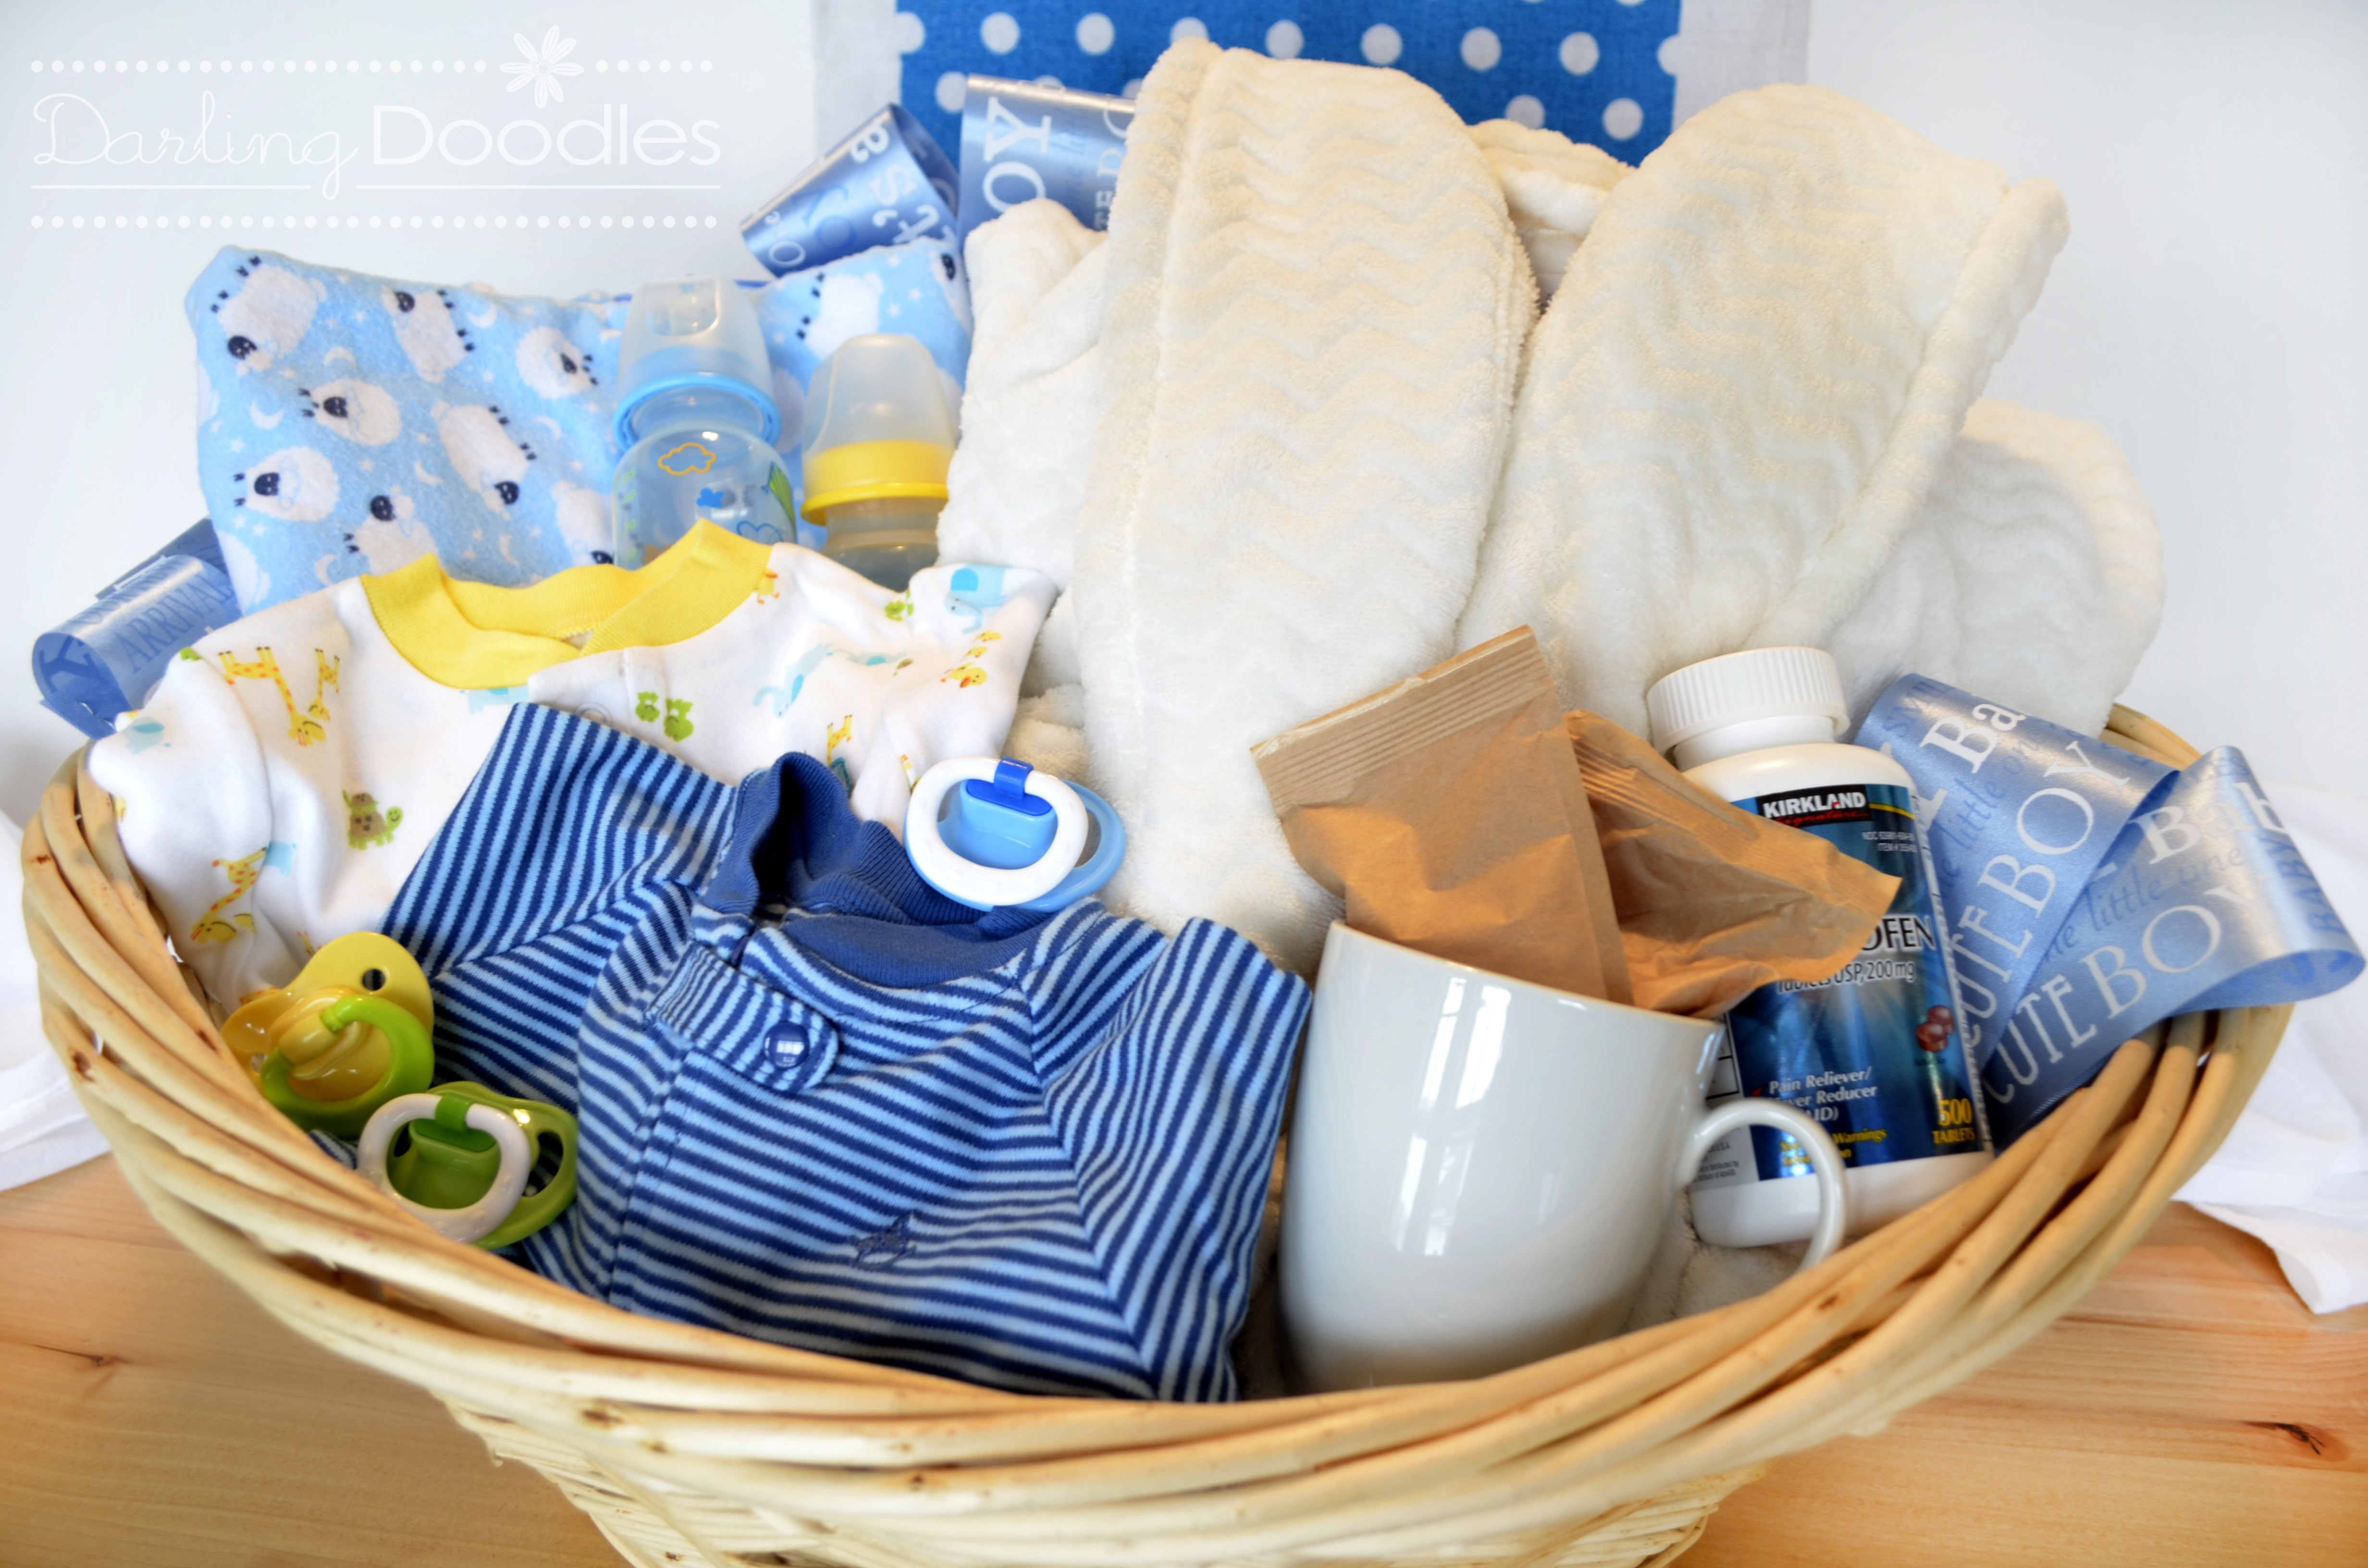 Best ideas about Gift Basket Ideas For Baby Shower . Save or Pin Up All Night Survival Kit Darling Doodles Now.